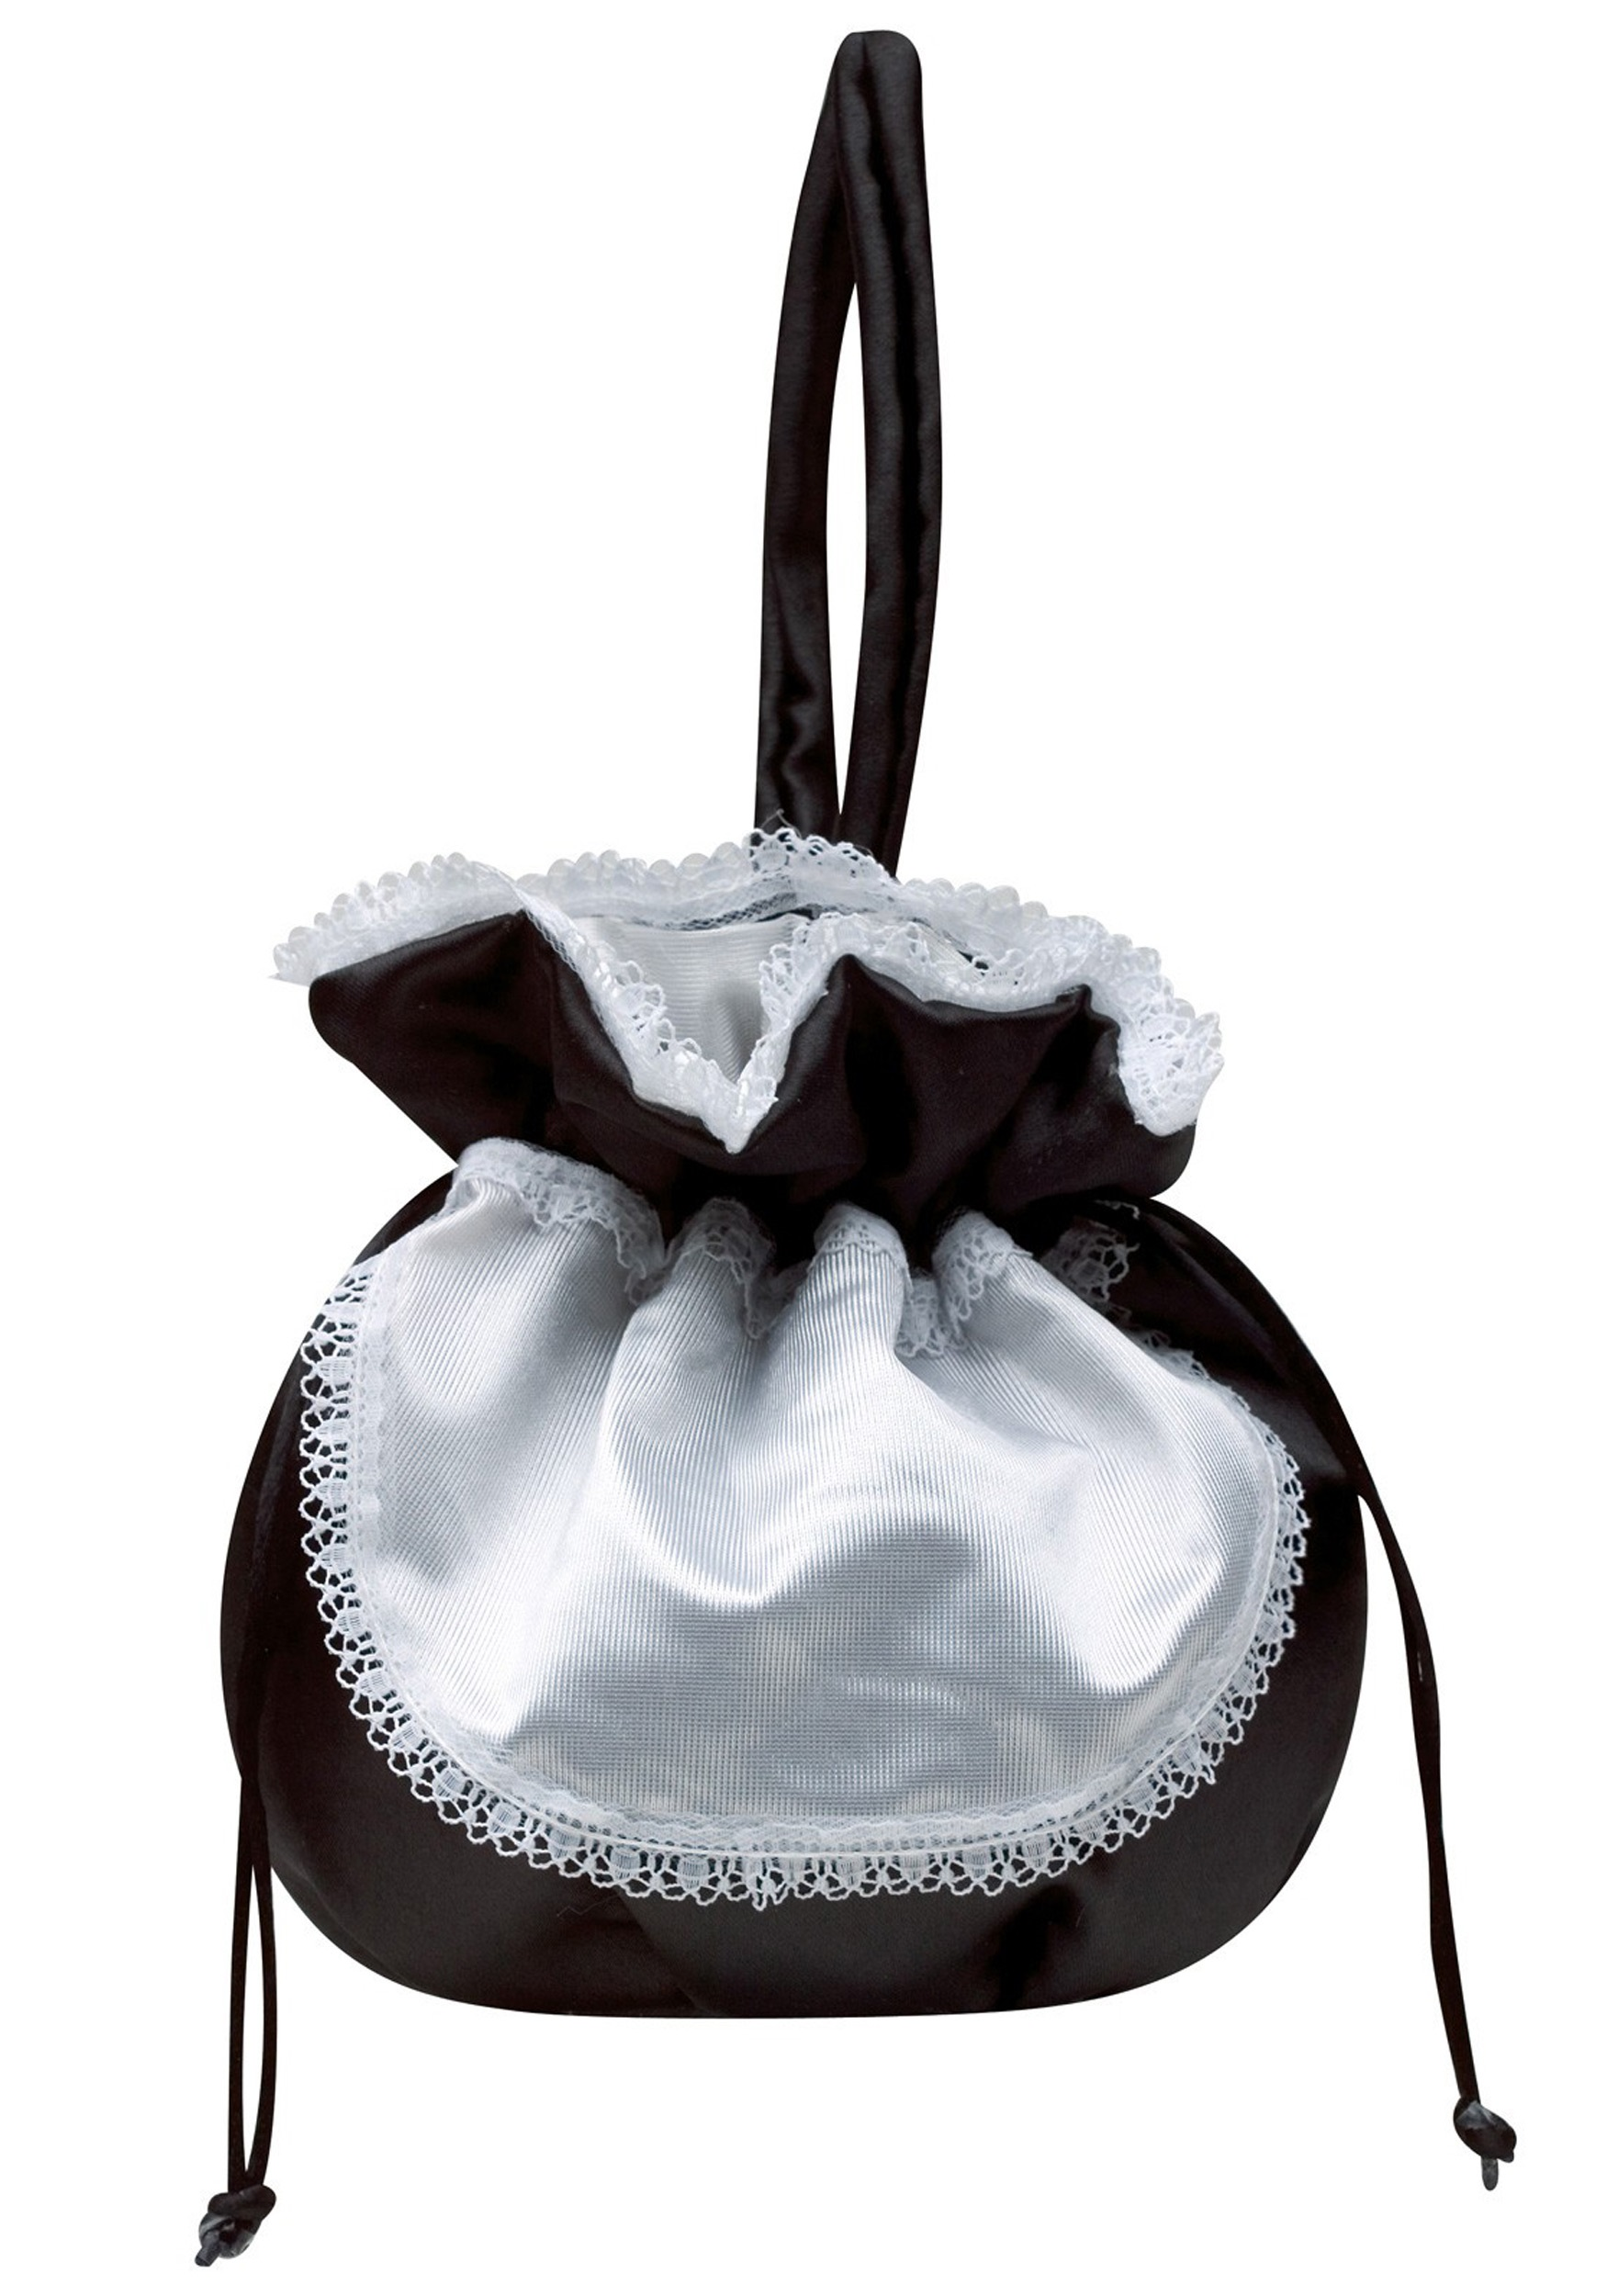 French Maid Handbag - French Maid Costume Accessories